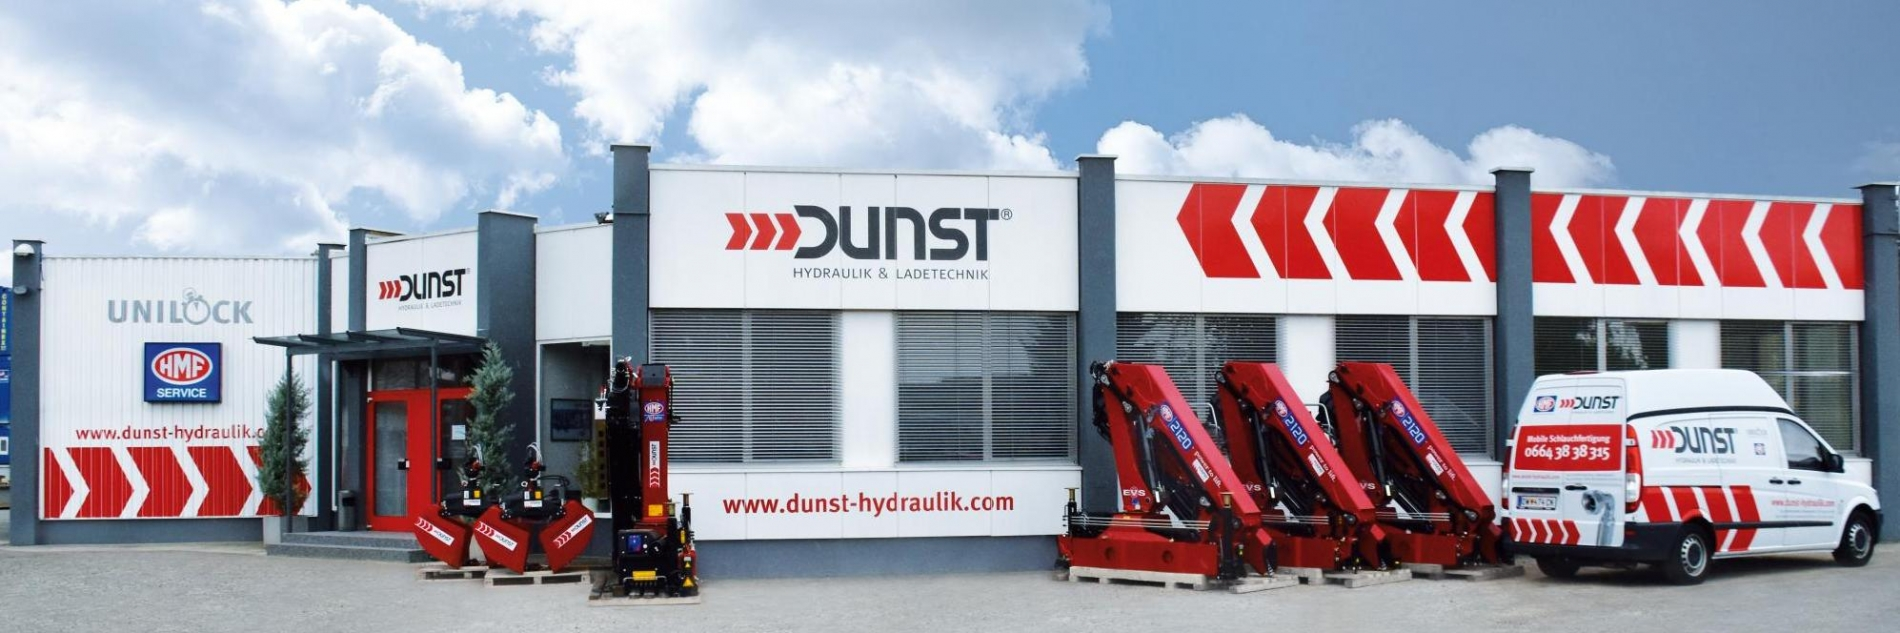 dunst-hydraulikat--article-1100-1.jpeg